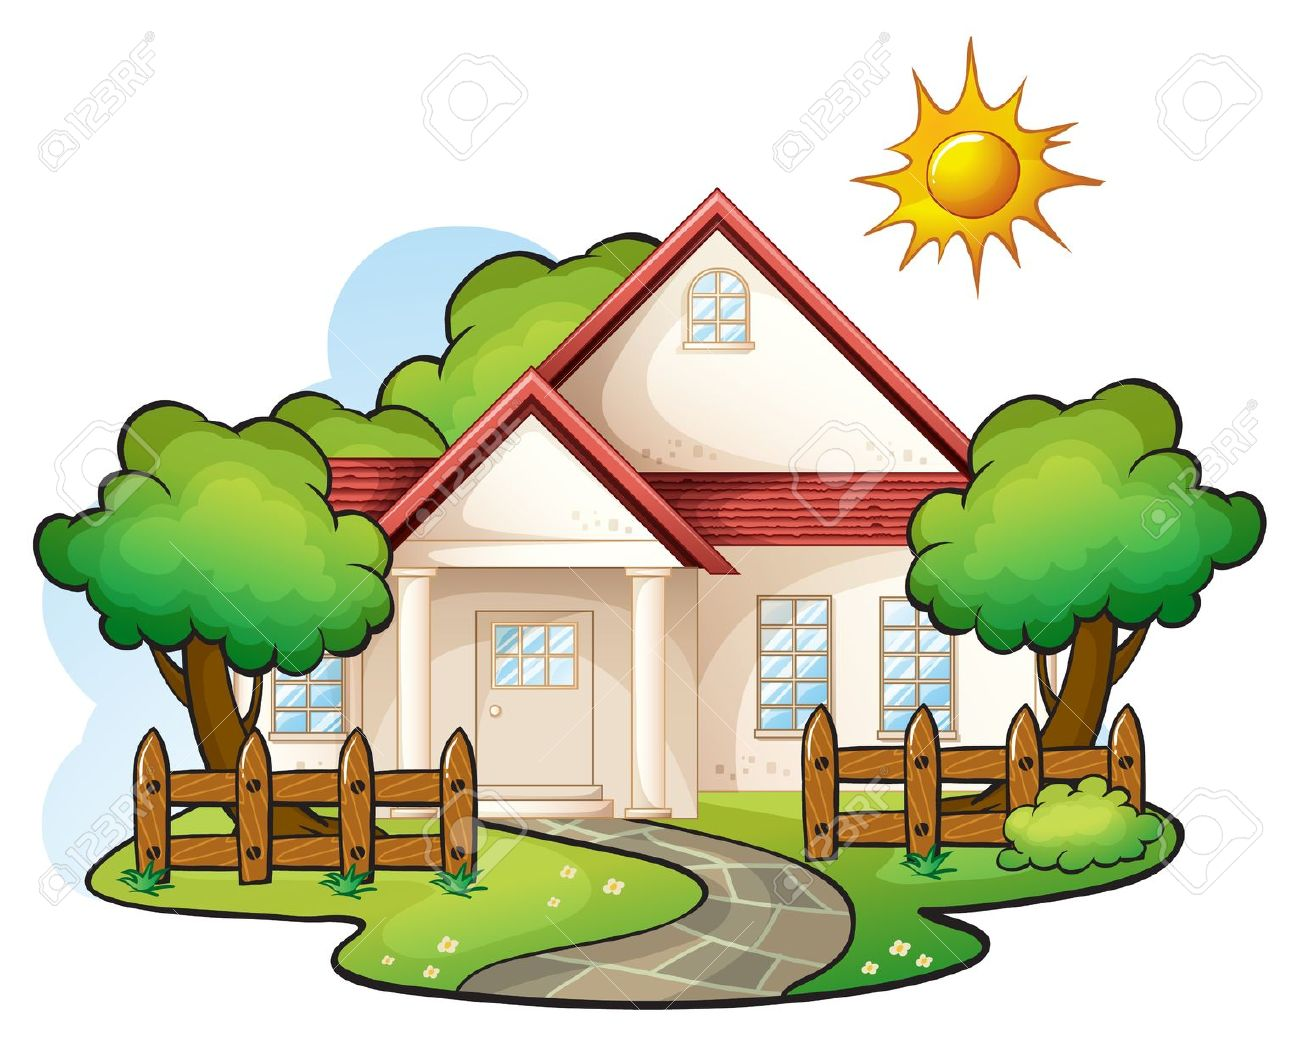 clipart transparent download Yard clipart cute cottage. Collection of free download.